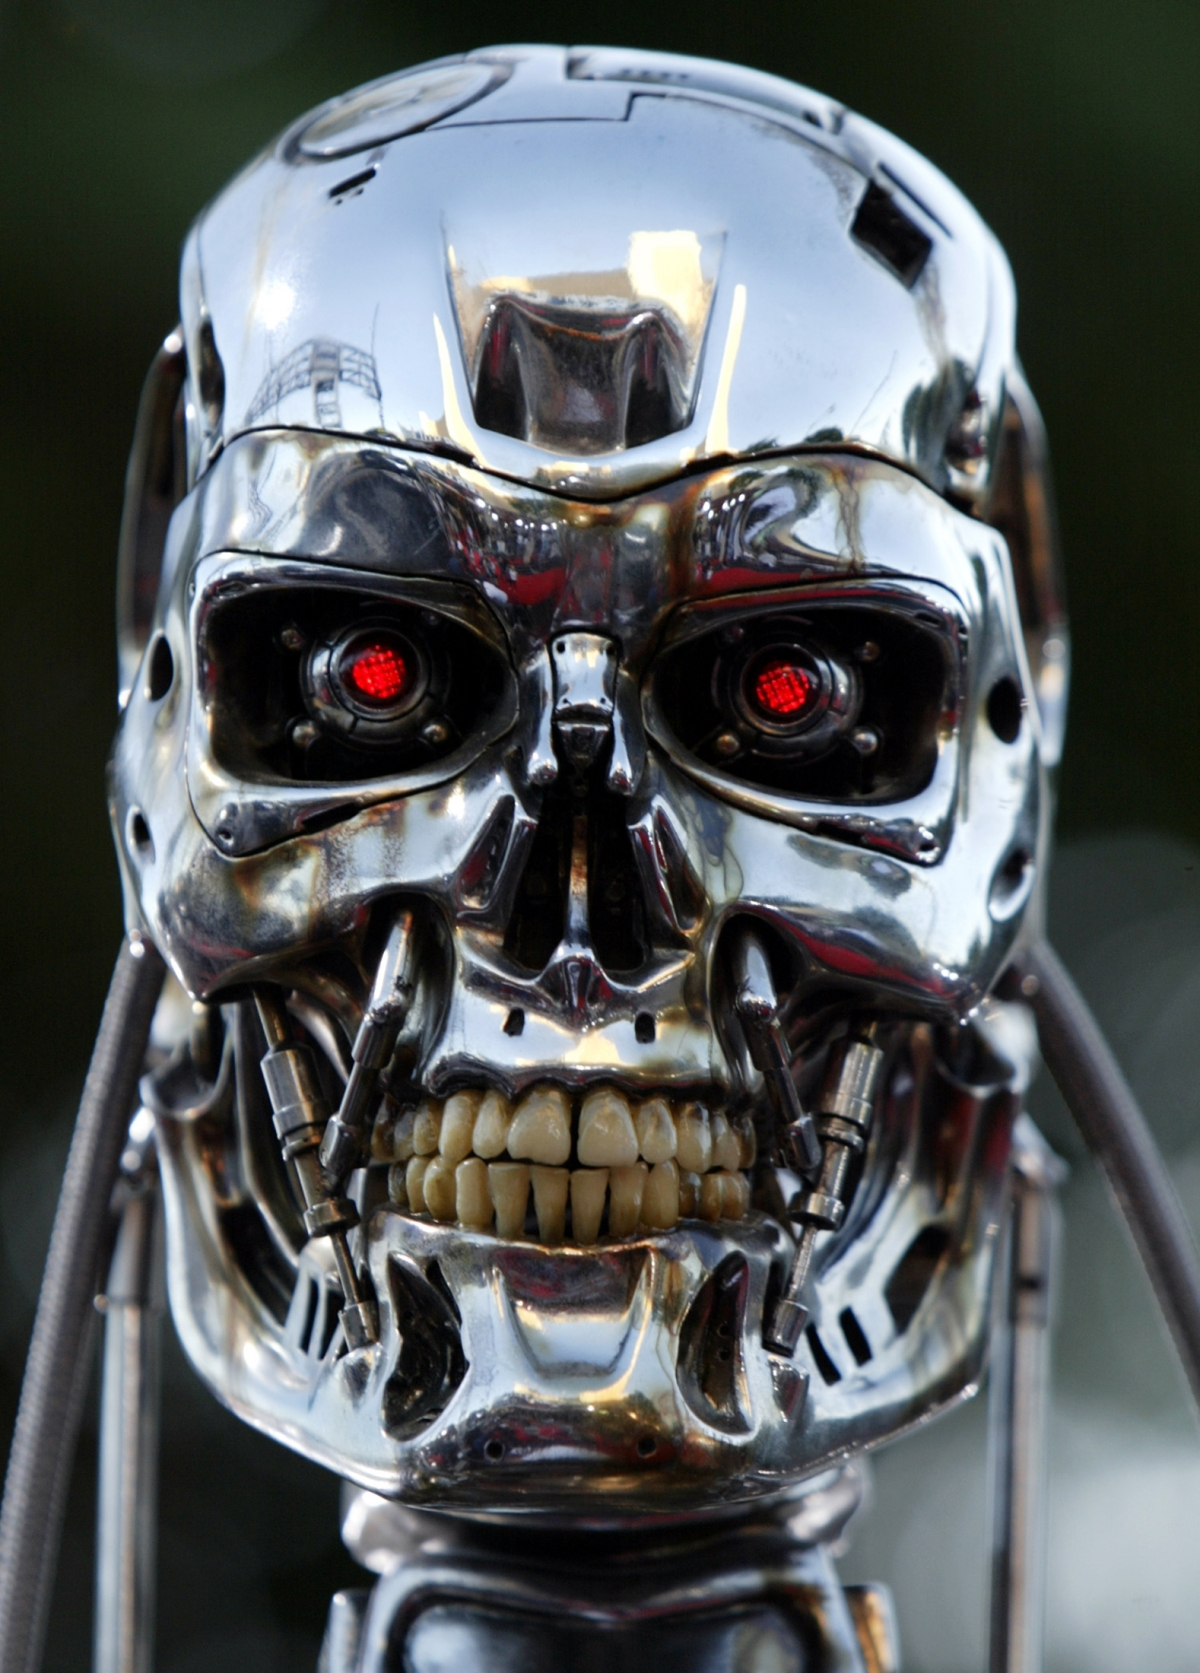 Model of the killer robot from the movie Terminator 3. (Reuters)